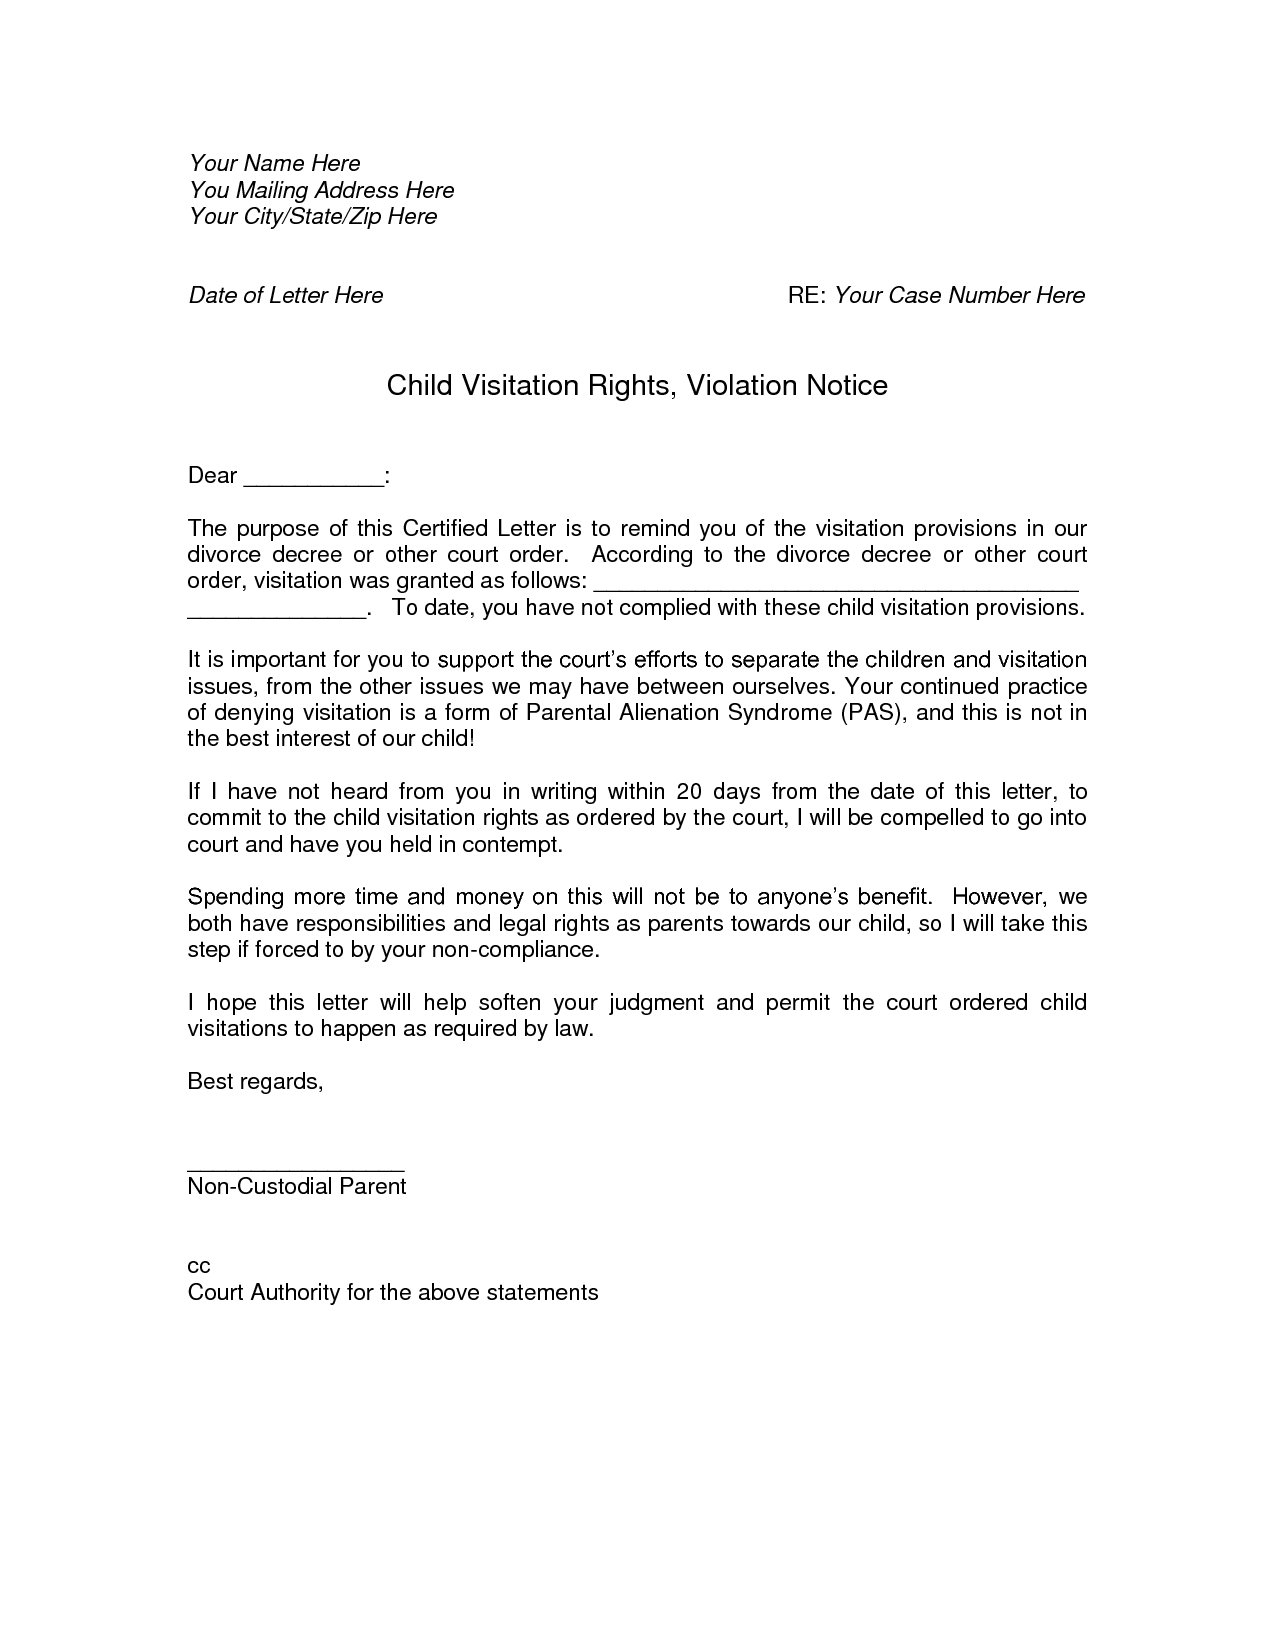 Child Visitation Letter Template - How to Write A Visitation Letter Letter format formal Sample